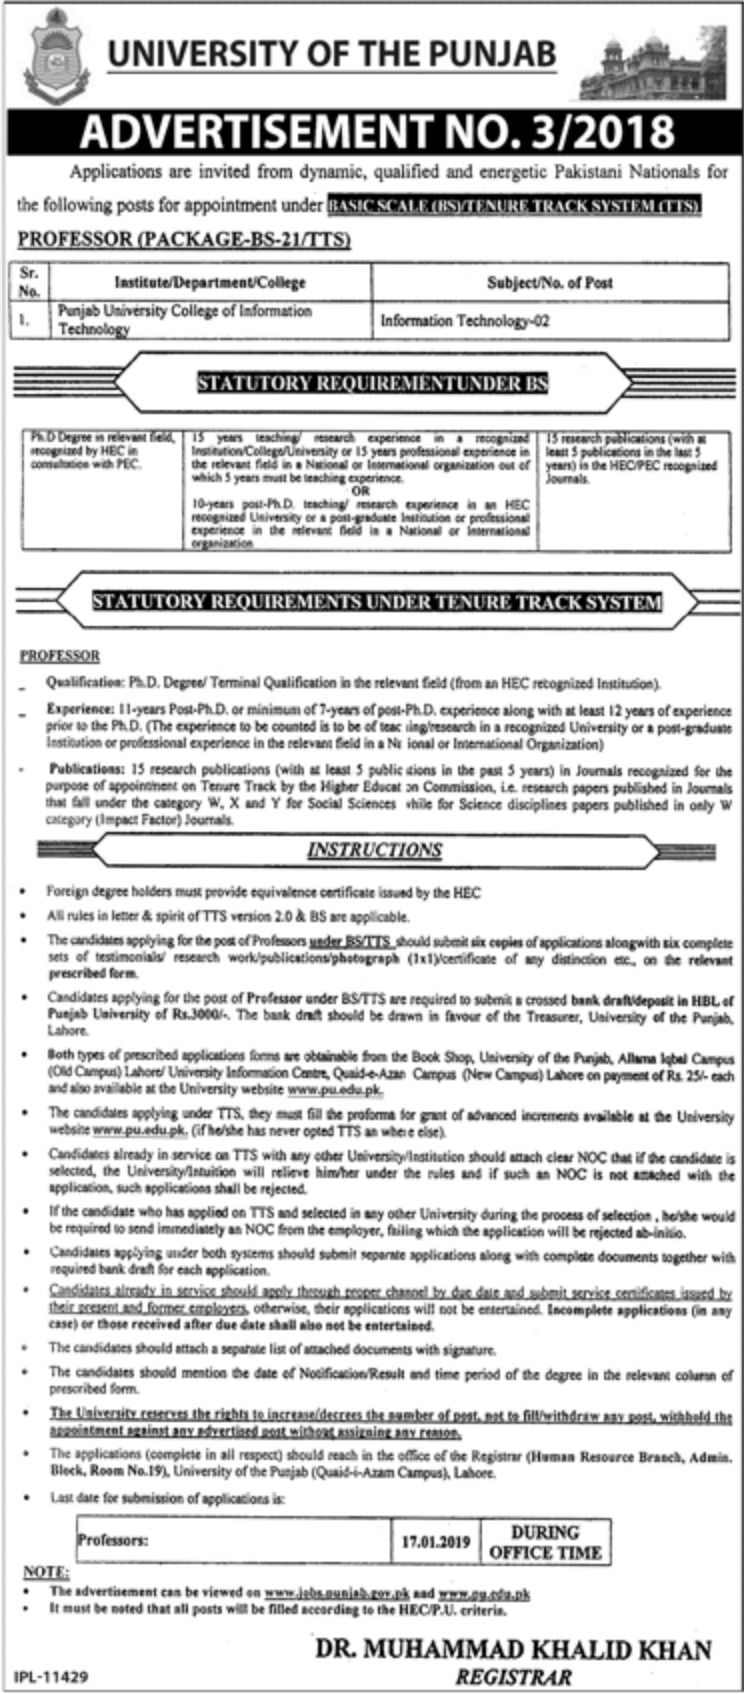 University of Punjab Jobs 2018 Latest